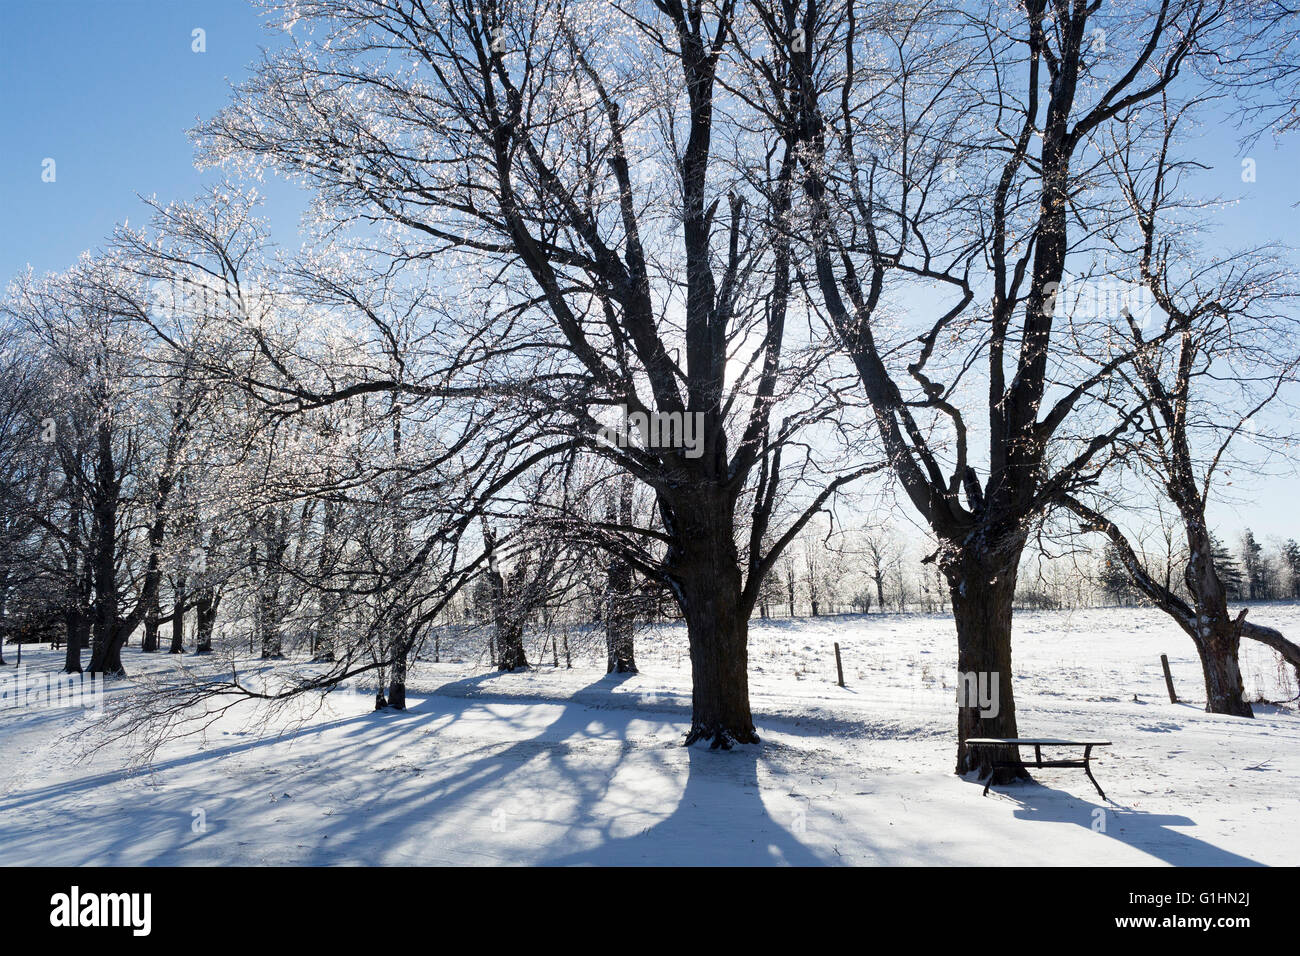 sun-streaming-behind-maple-trees-on-sunny-day-in-winter-with-snow-G1HN2J.jpg